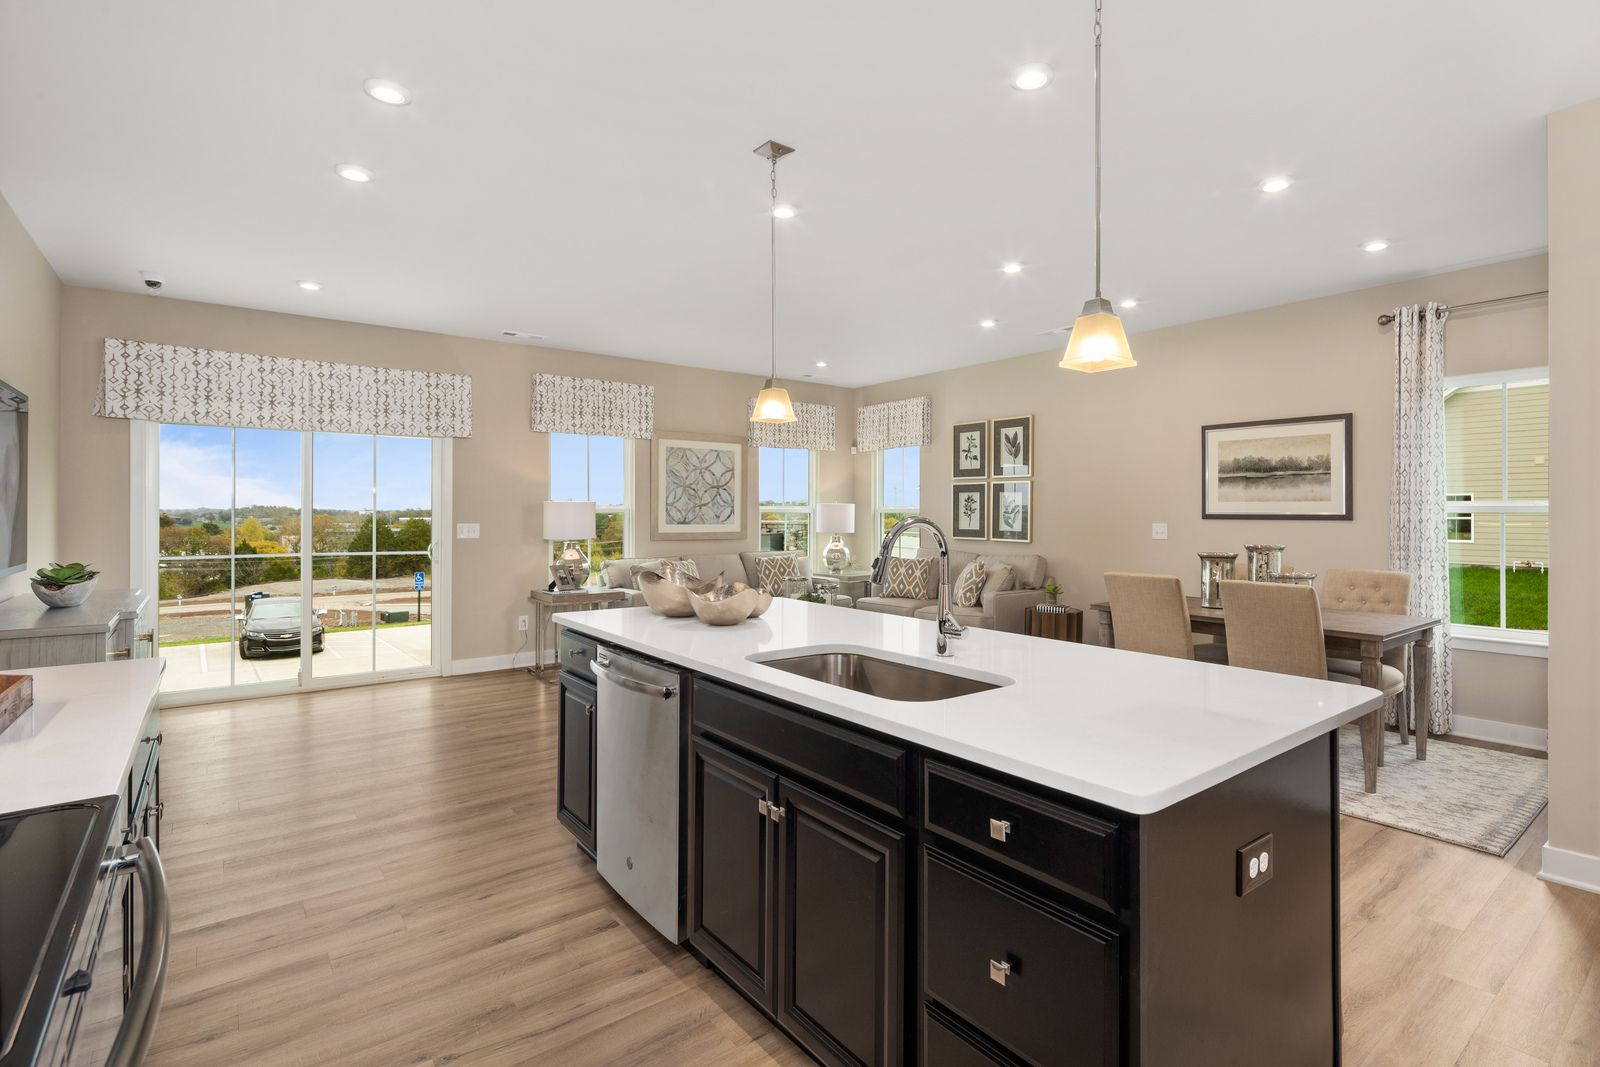 Kitchen featured in the Roxbury w/Extension & Finished basement By Ryan Homes in Akron, OH